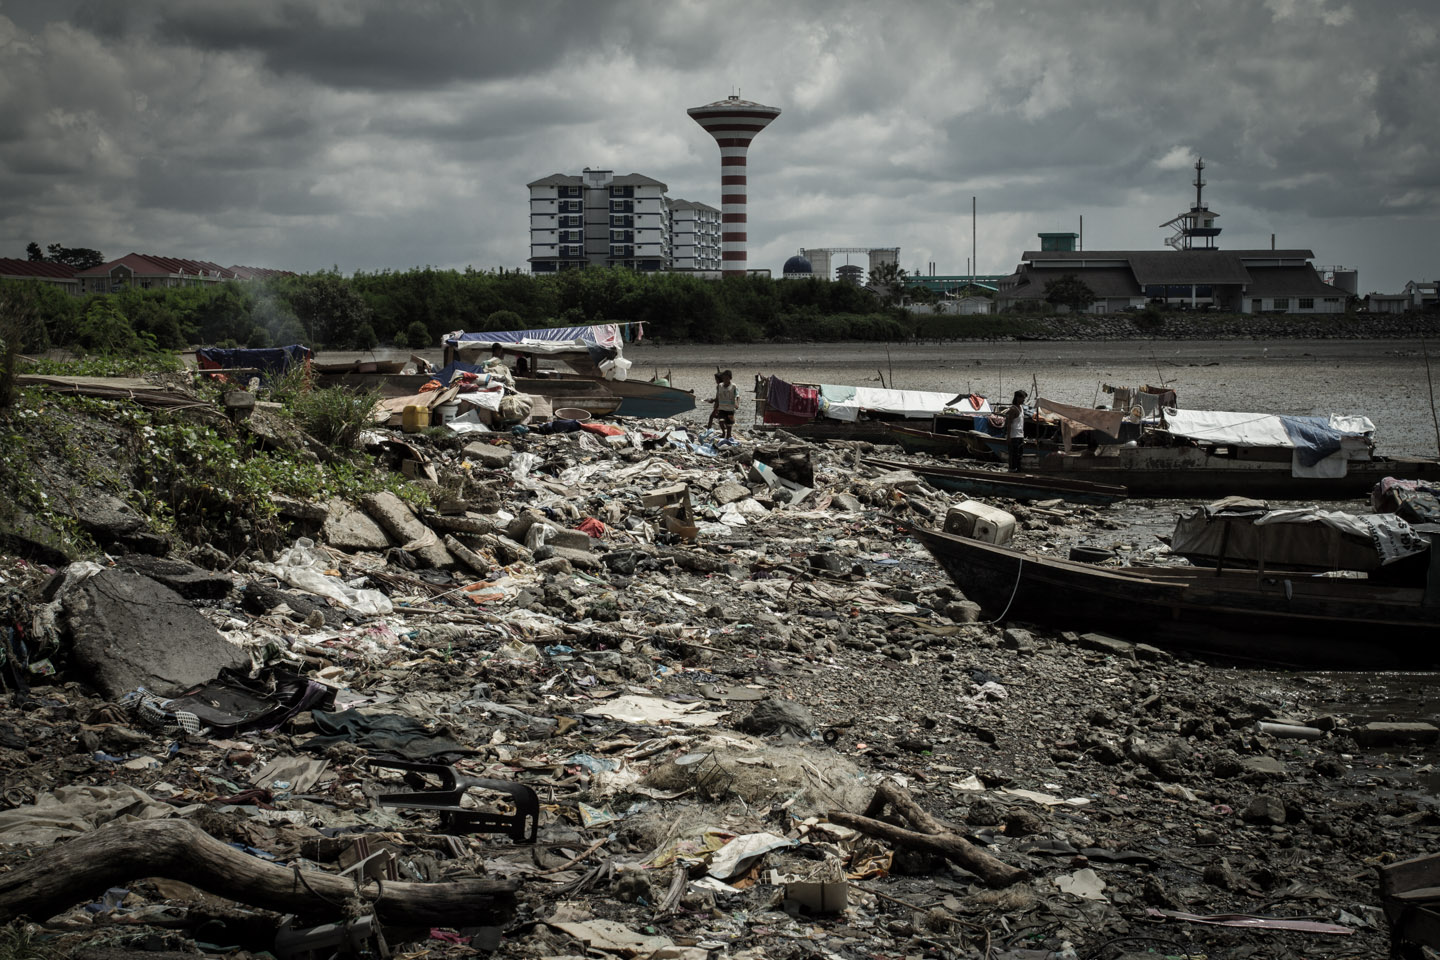 Filipino Philippine illegal immigrants in their boats surrounded by dirt, waste and pollution